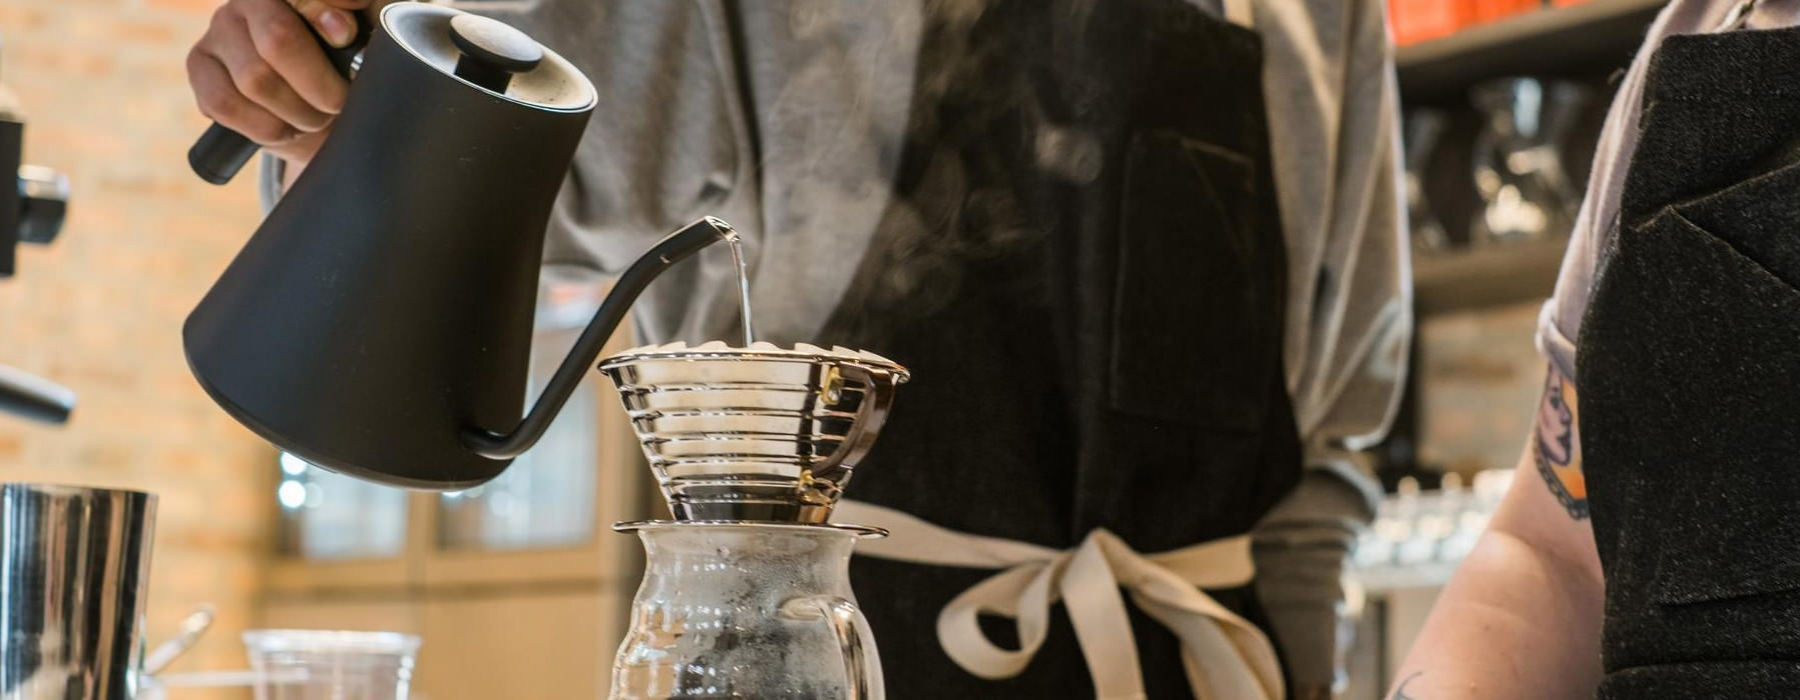 barista making pour over coffee in coffee shop